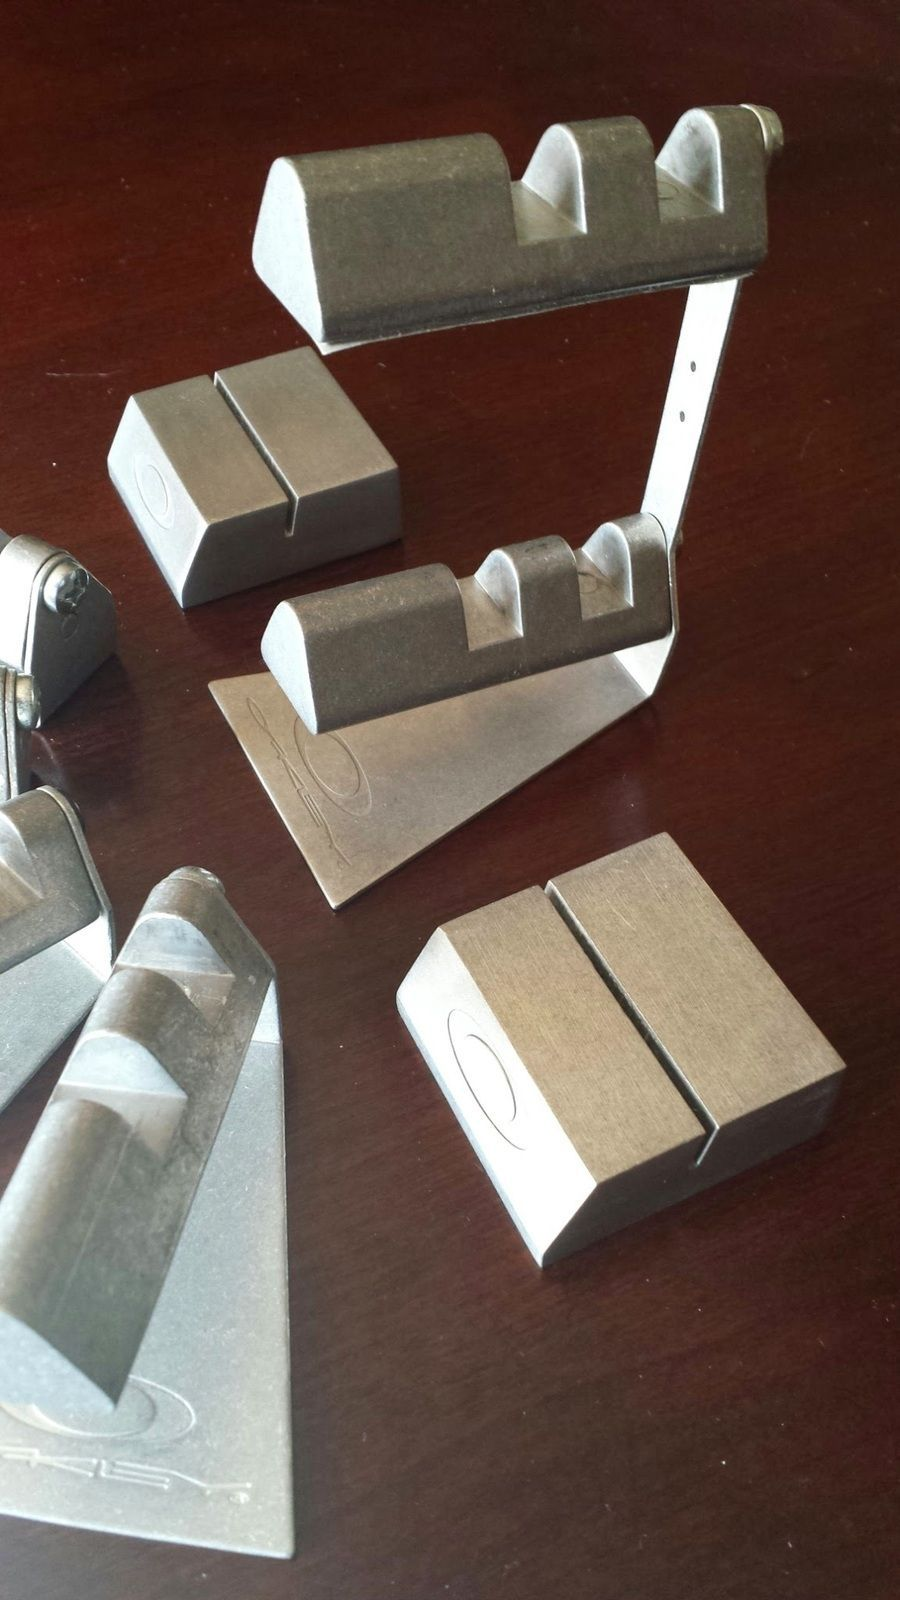 5 Display Stands With 2 Card Holders $55 Shipped - 20140322_135800.jpg